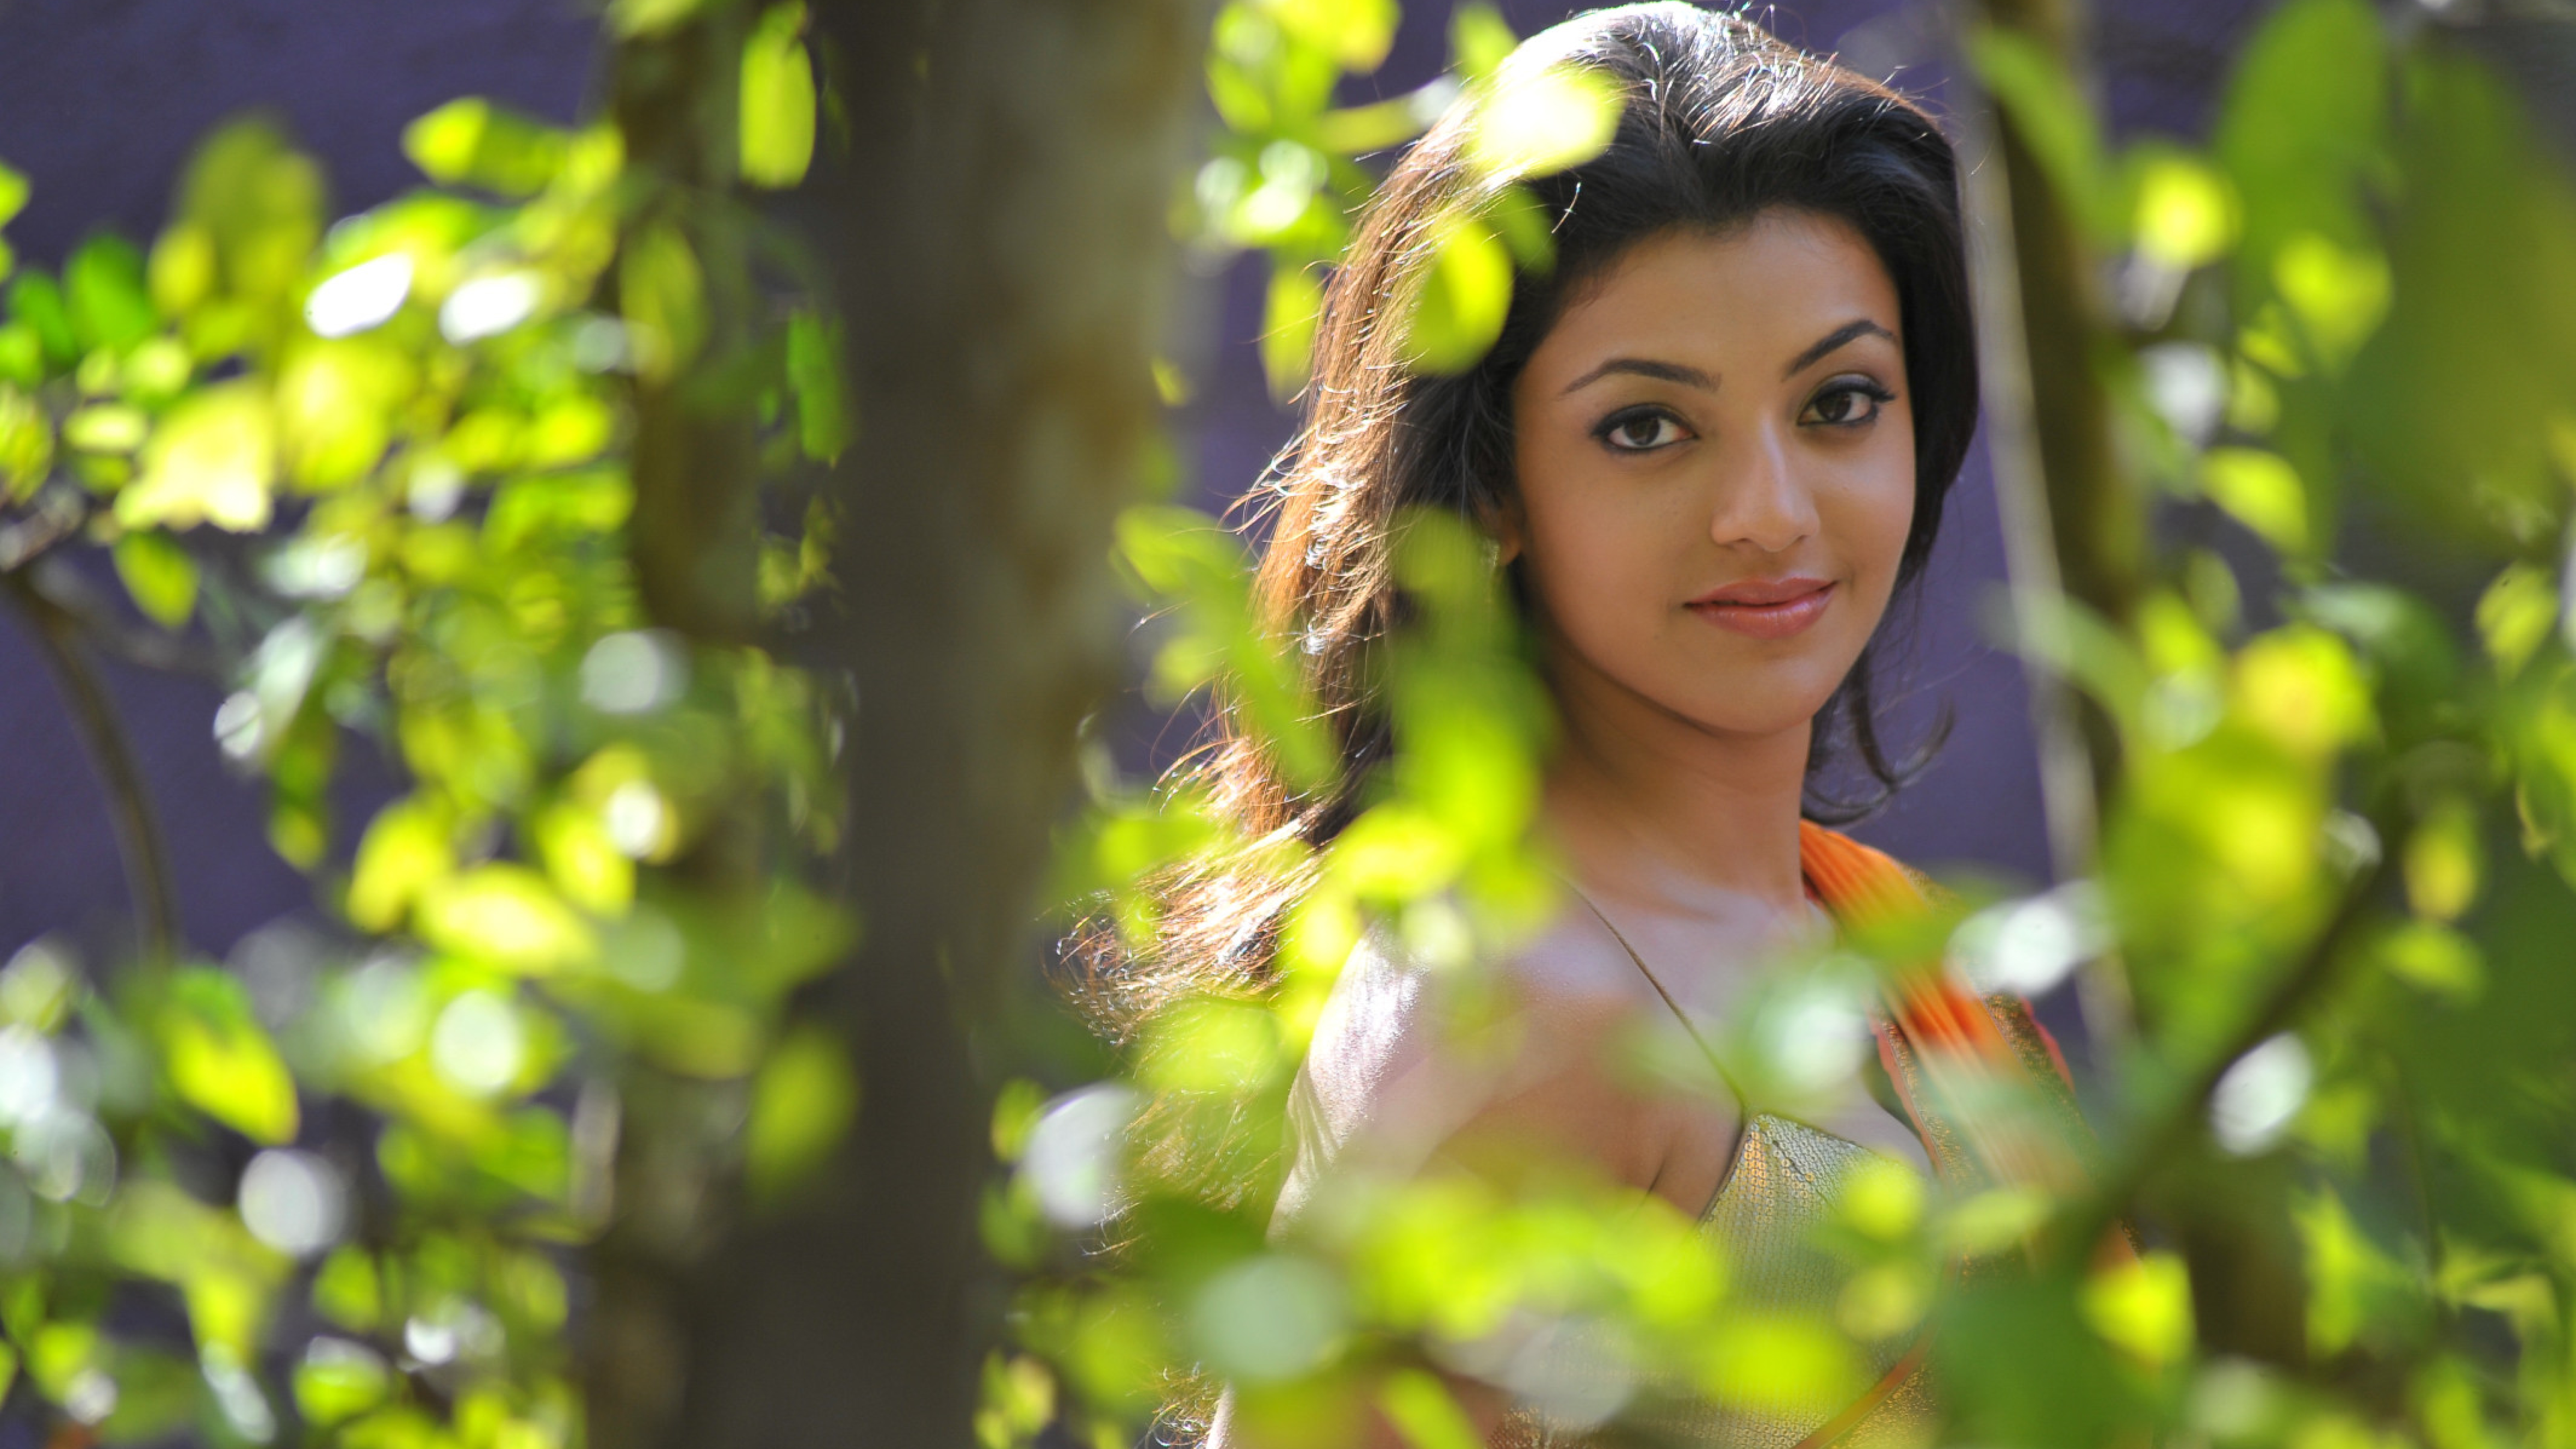 Kajal Hd Wallpapers 5120x2880 Kajal Agarwal New Images 5k Wallpaper Hd Indian Celebrities 4k Wallpapers Images Photos And Background